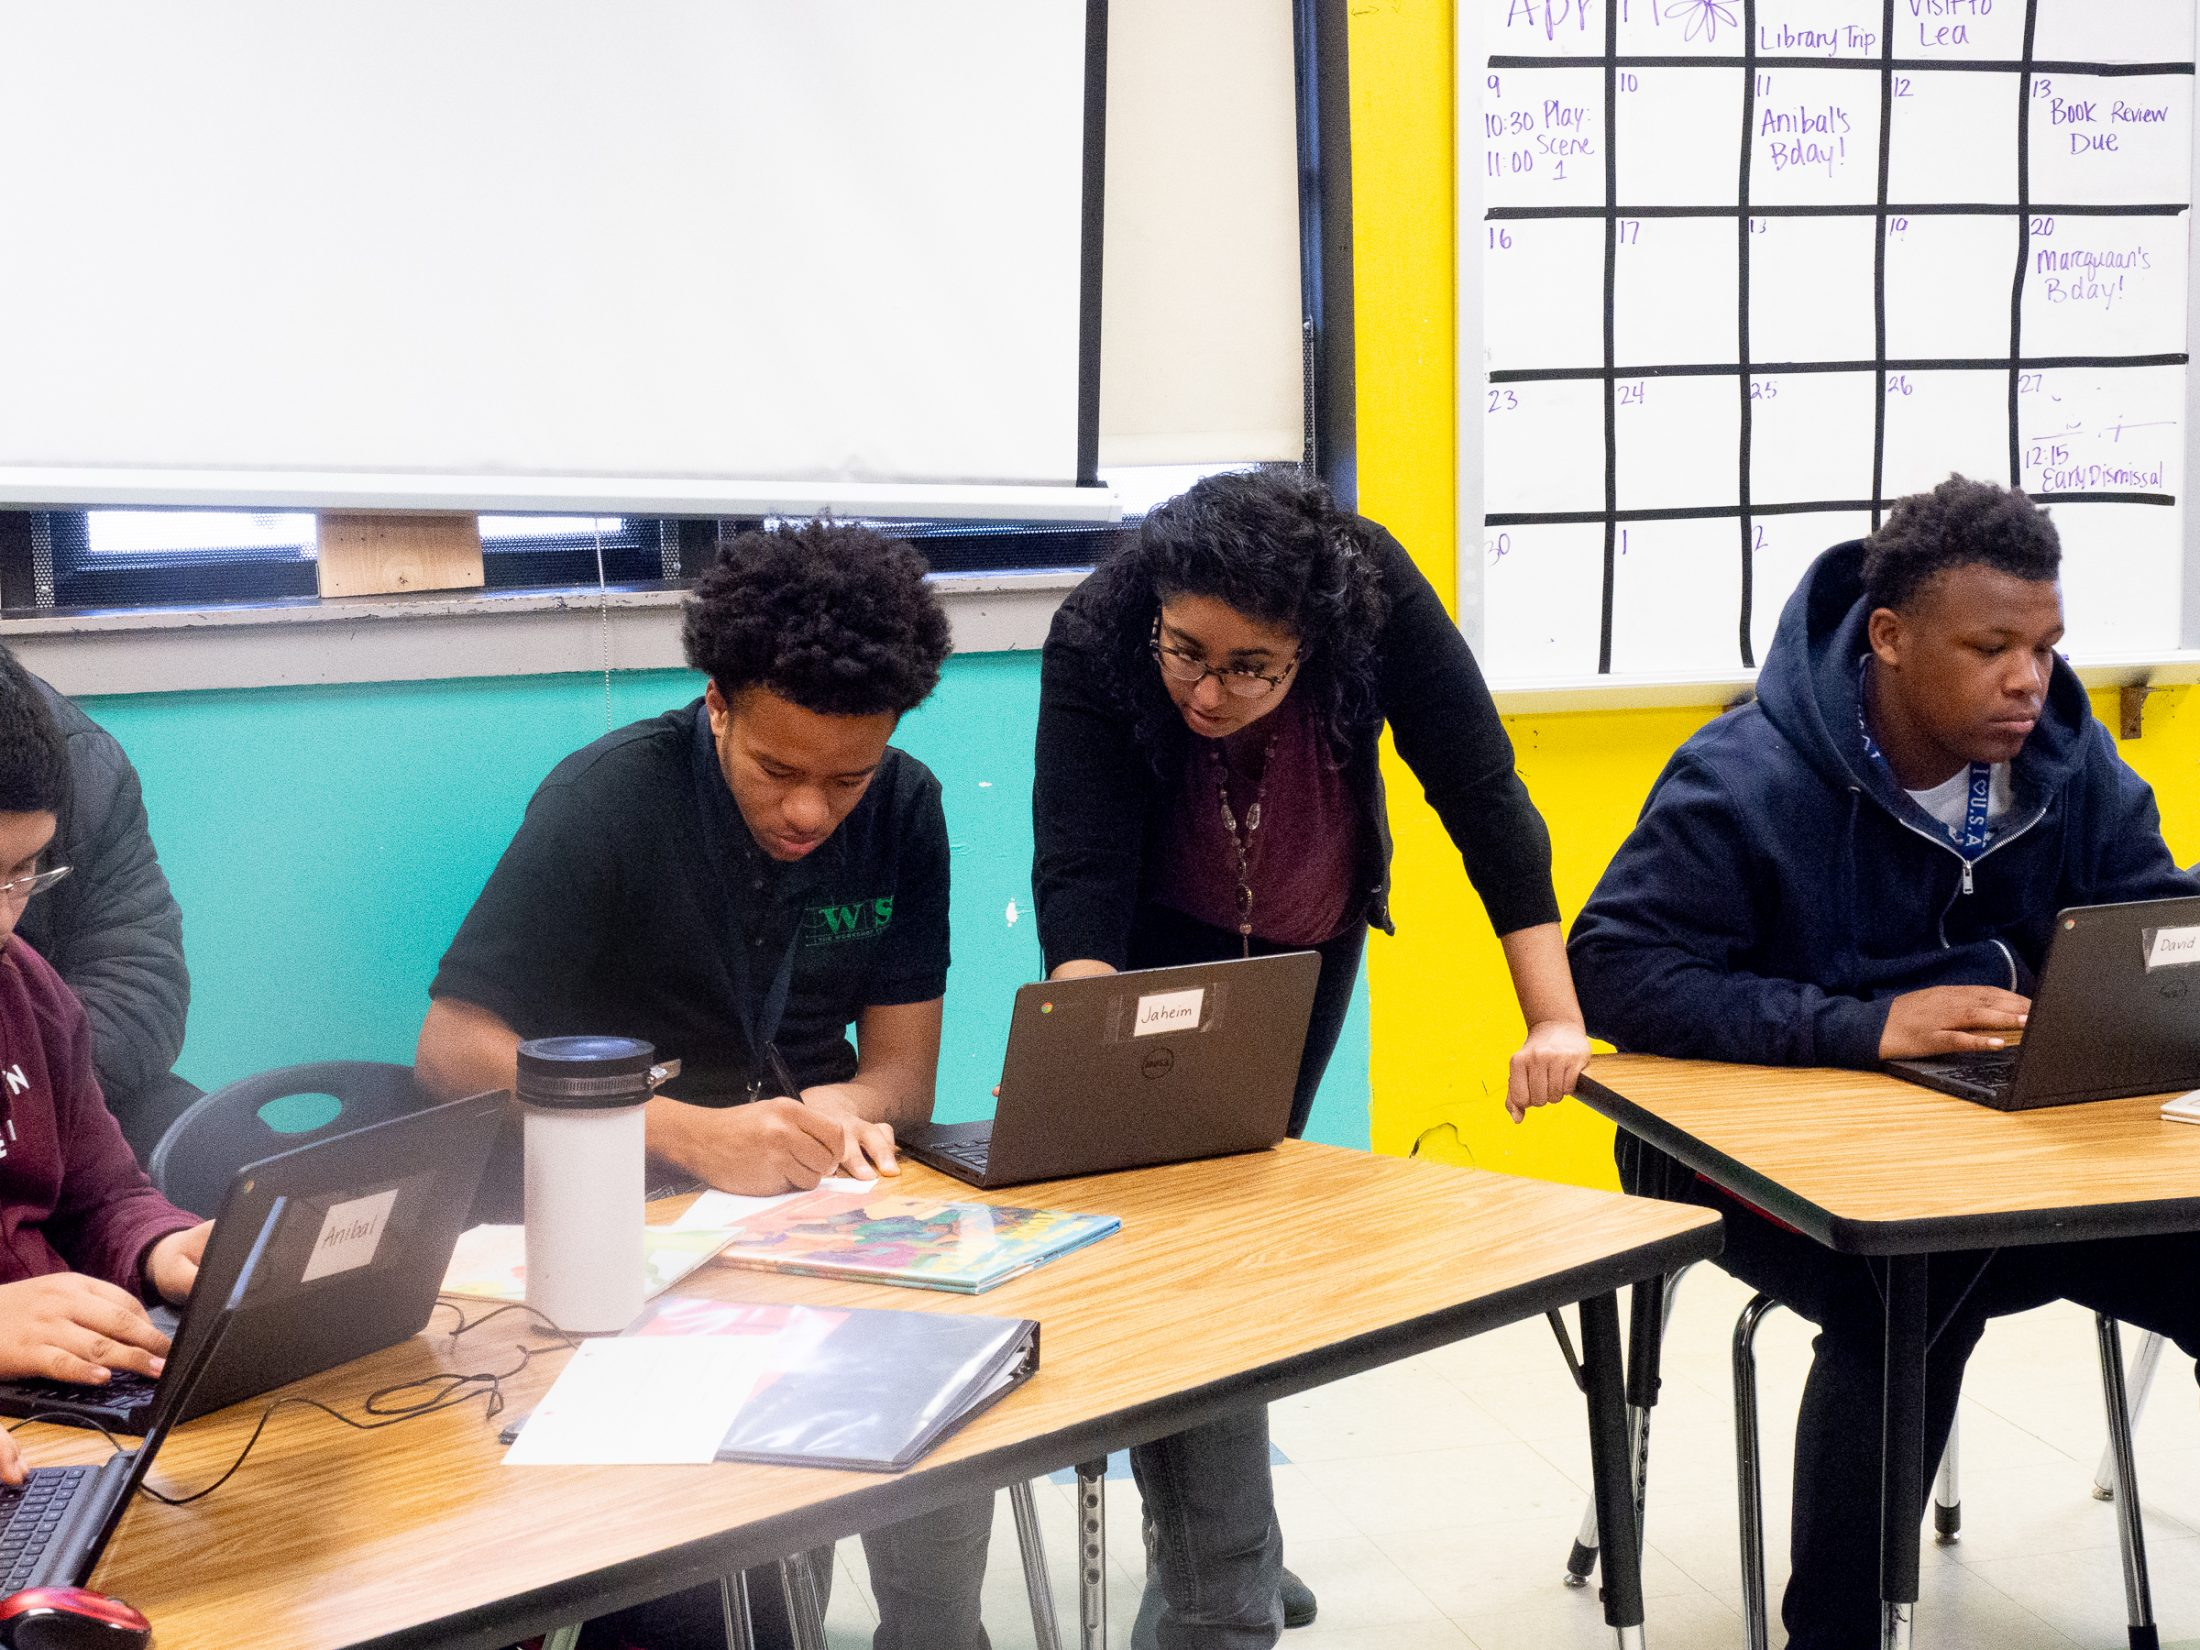 At The Workshop School, English teacher Swetha Narasimhan works with ninth-graders on a project in which they create an original children's book.